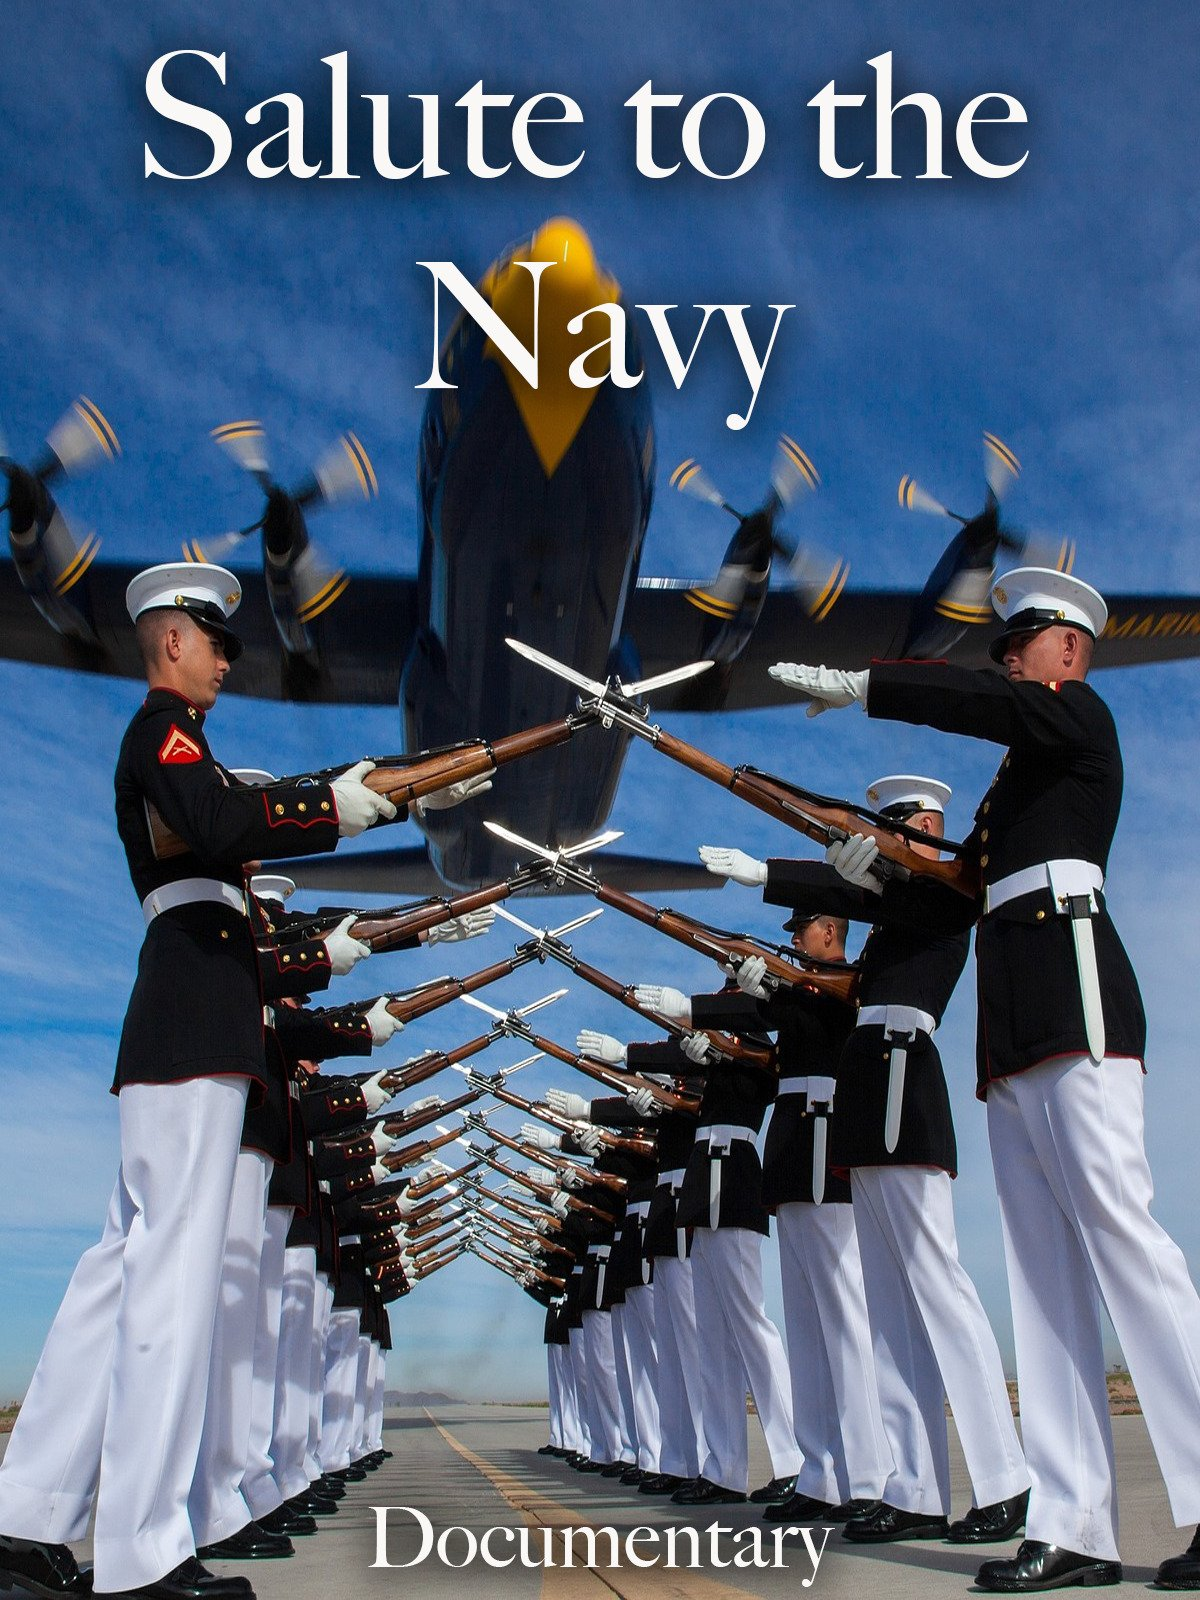 Salute to the Navy Documentary